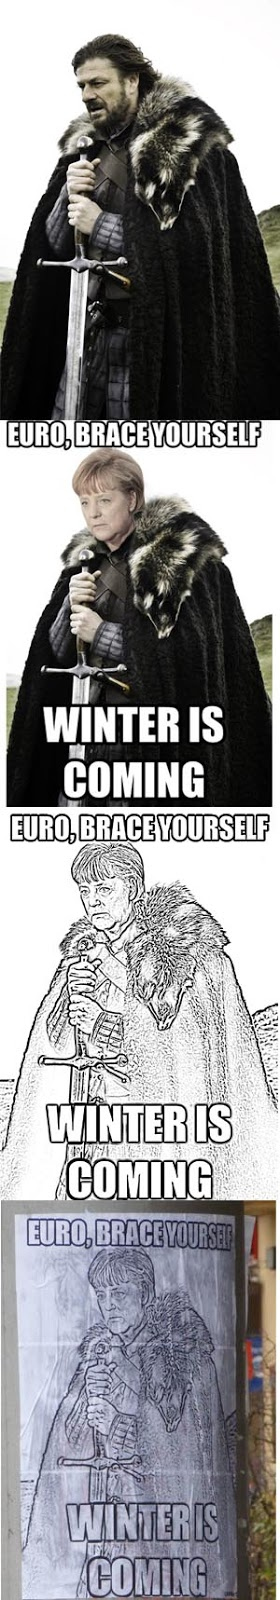 games of thrones, big posters, ned stark,angela merkel, stickers, winter